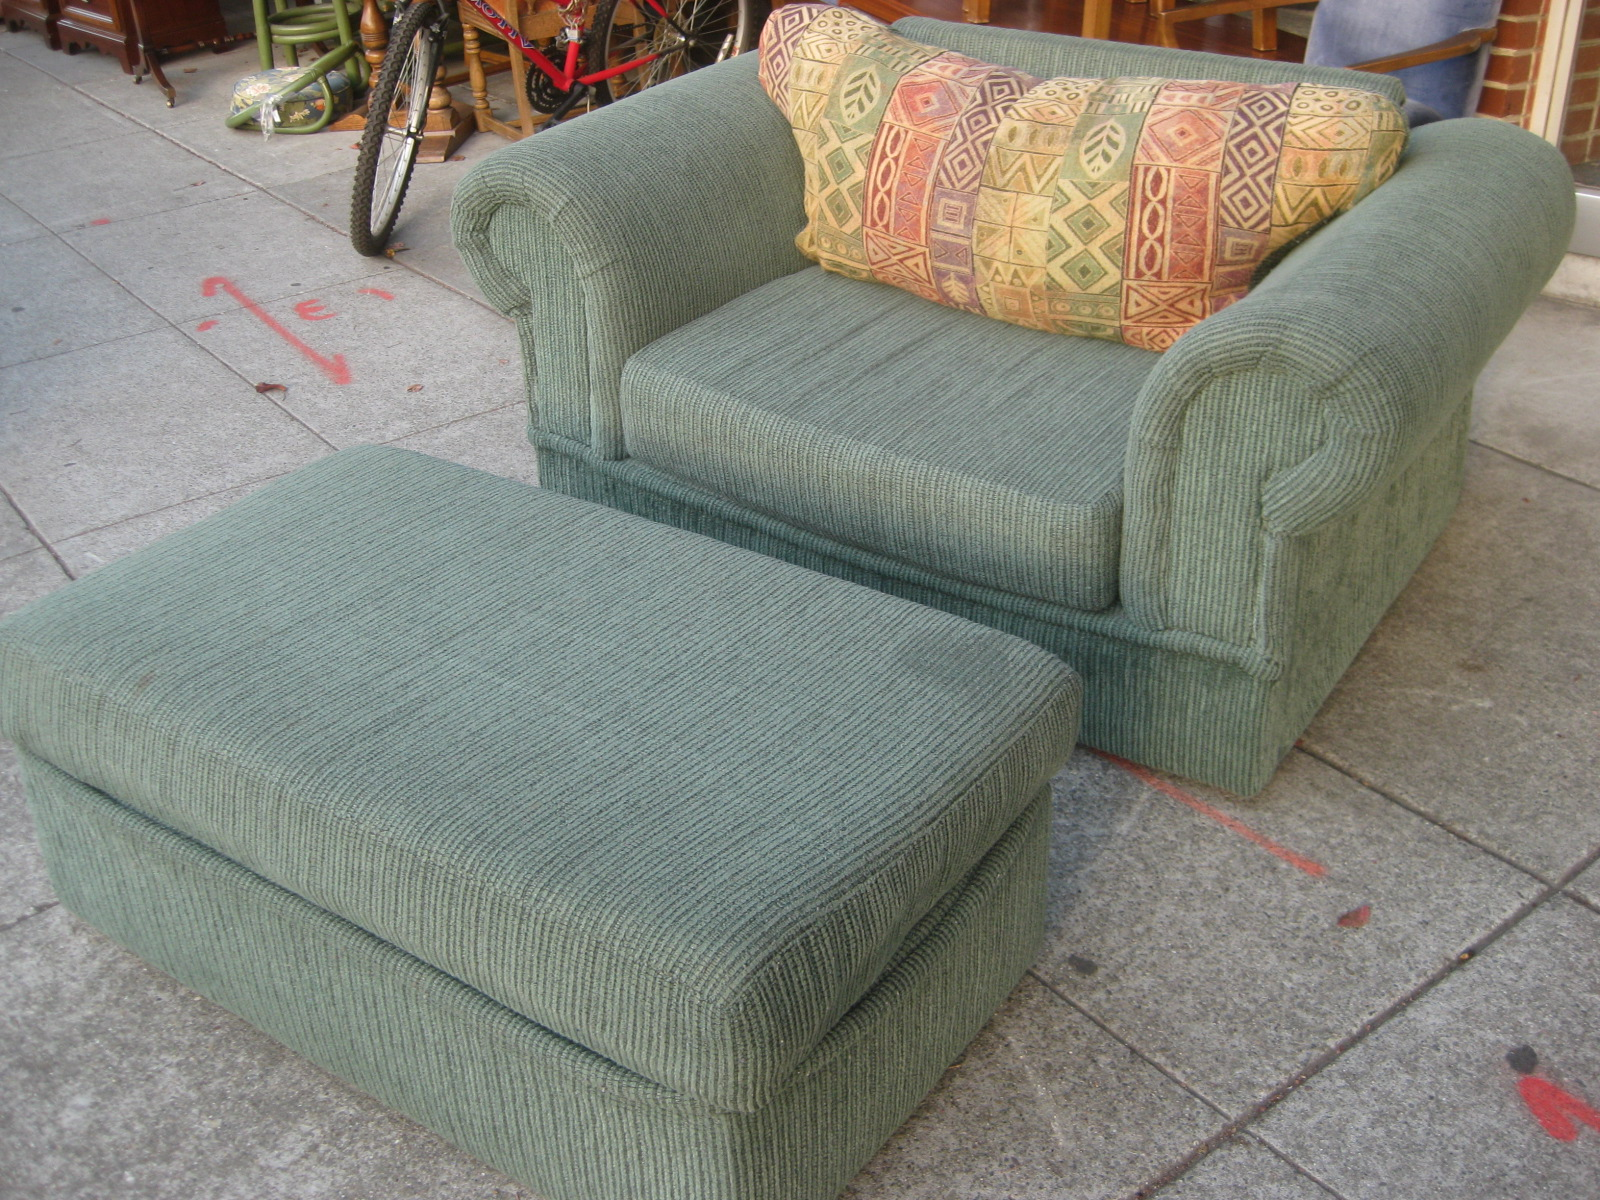 Uhuru Furniture Amp Collectibles Sold Oversized Chair And